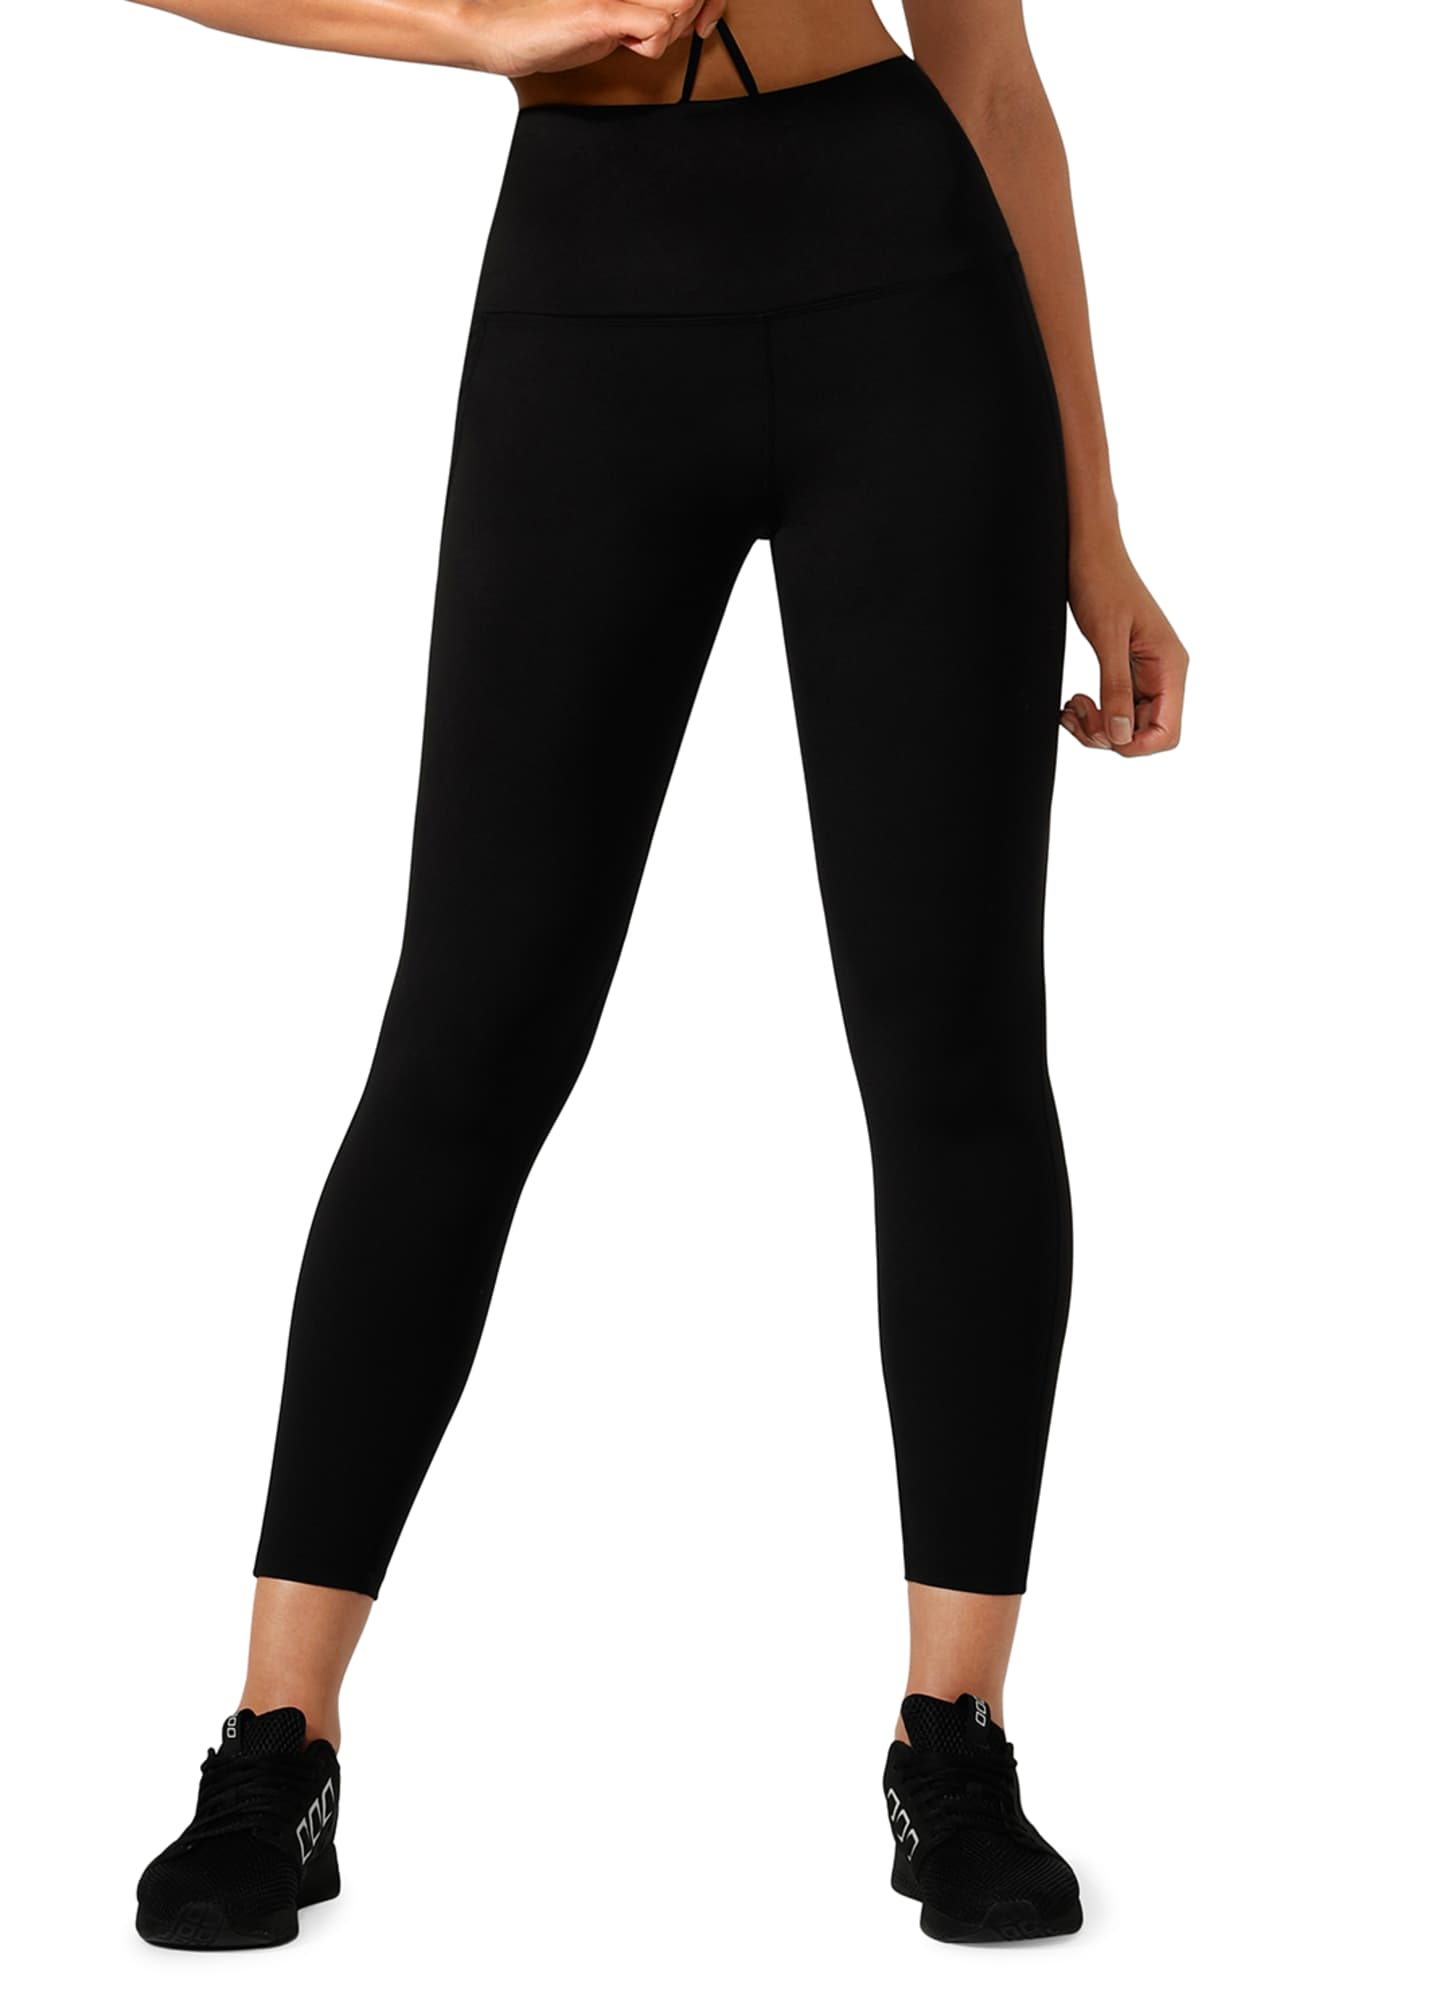 Lorna Jane Booty Phone-Pocket Ankle Biter Leggings